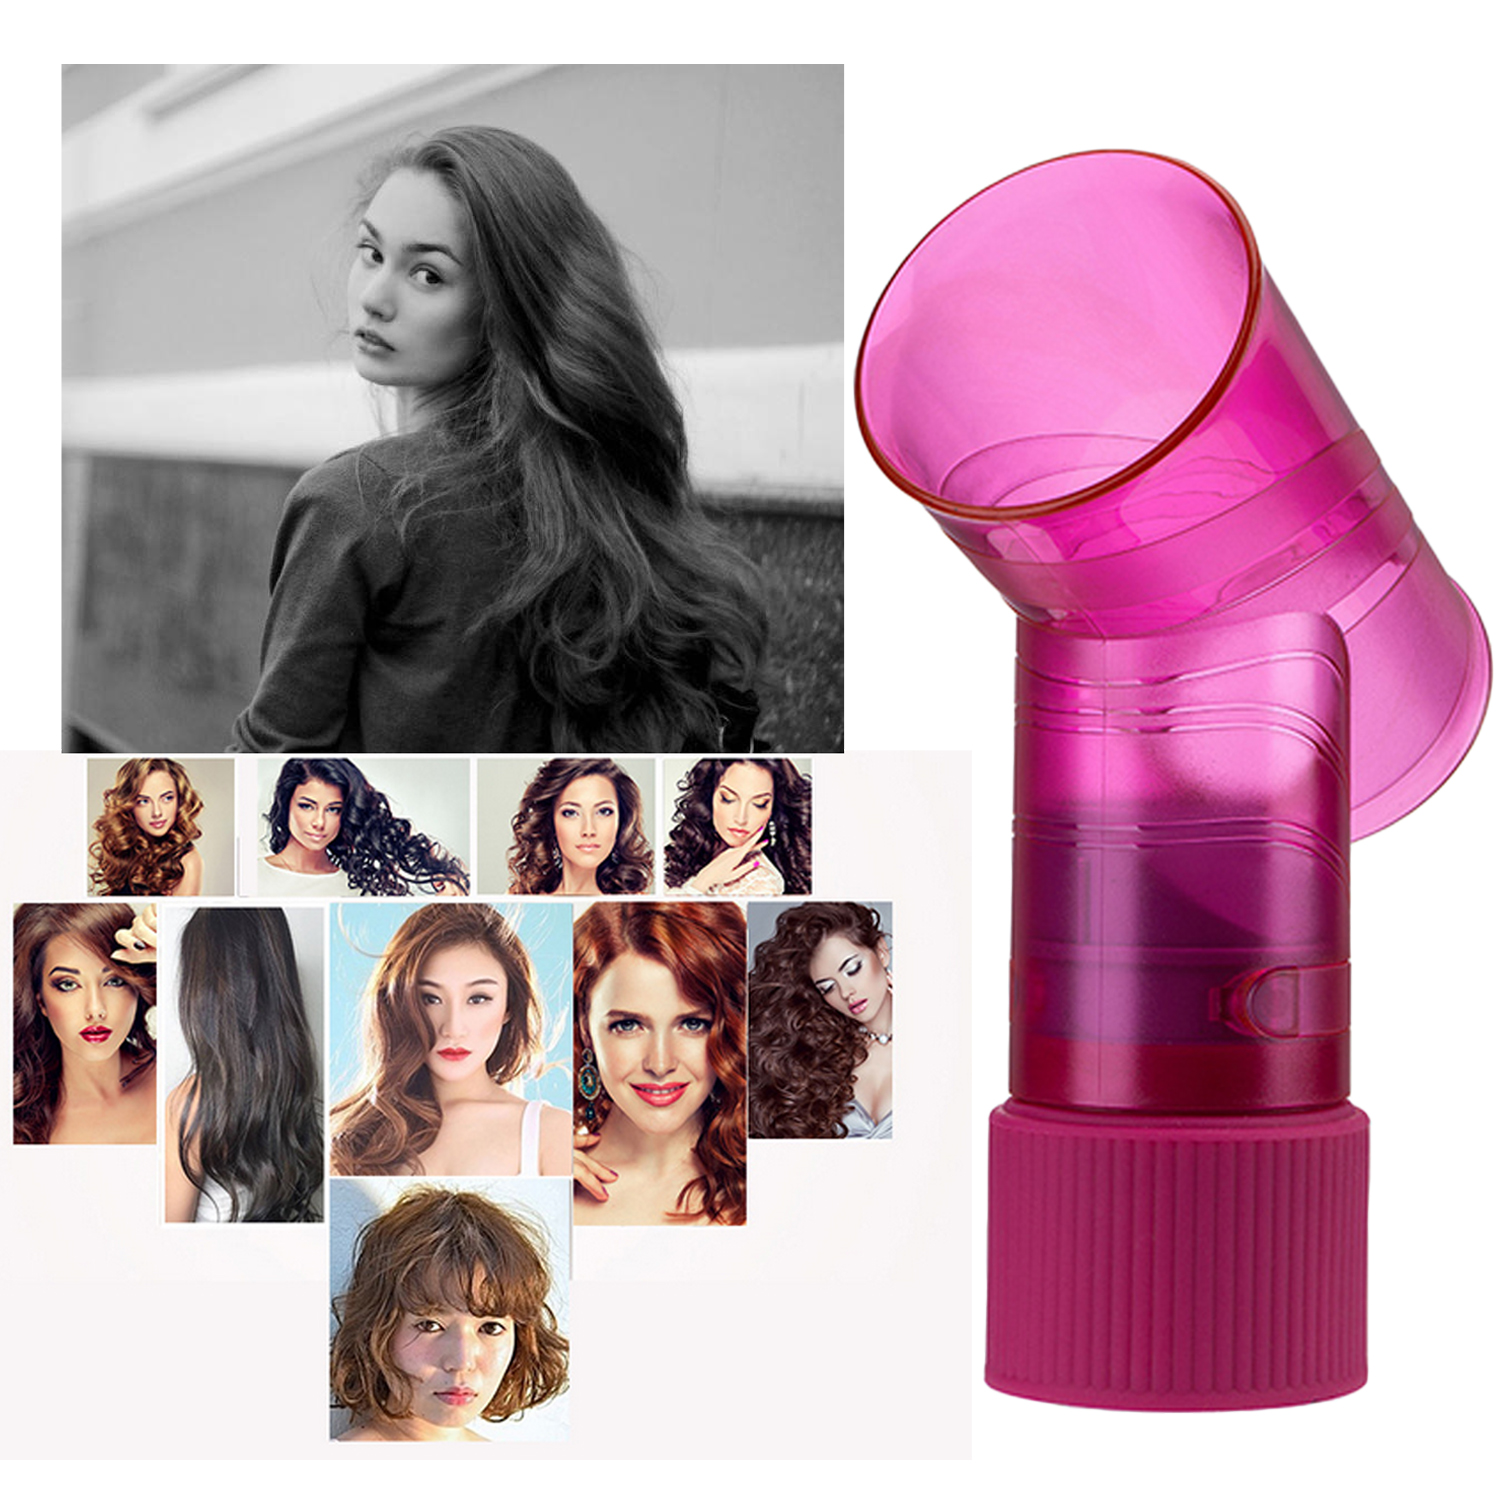 Portable Hair Curl Dryer Blower Diffuser Attachment For Curly Wavy Hair Stylist Hairdresser Salon Hair Curler Styling Tool